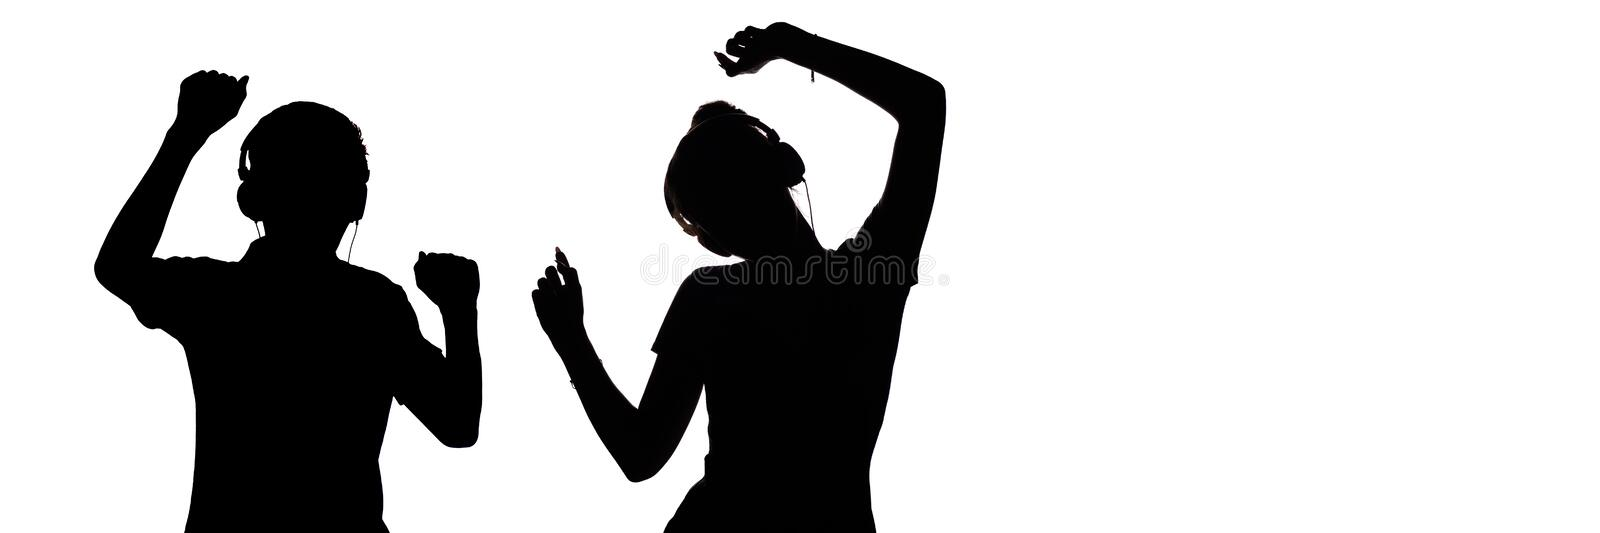 Silhouette of figures of teenagers in headphones listening to music, the guy and the girl are dancing with hands up, the concept stock images